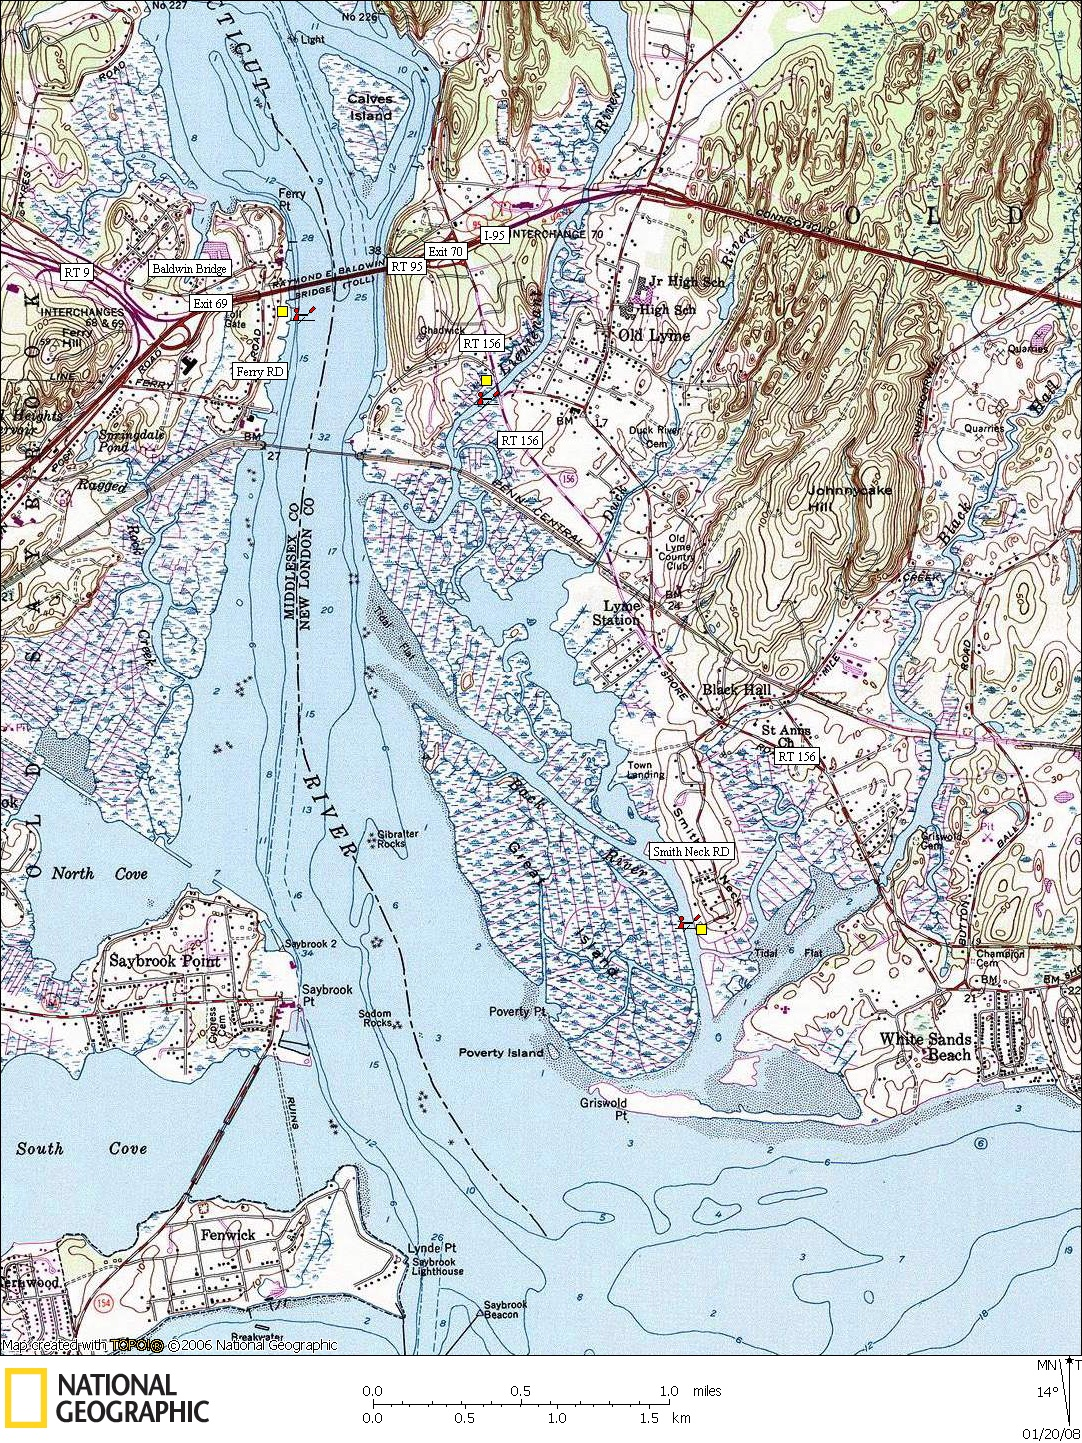 Connecticut, Map, Lakes, Ponds, Canoe, Canoeing, Kayak, Kayaking, Paddling, Lake, Pond, Flat water, Baldwin Bridge, Lieutenant River, 